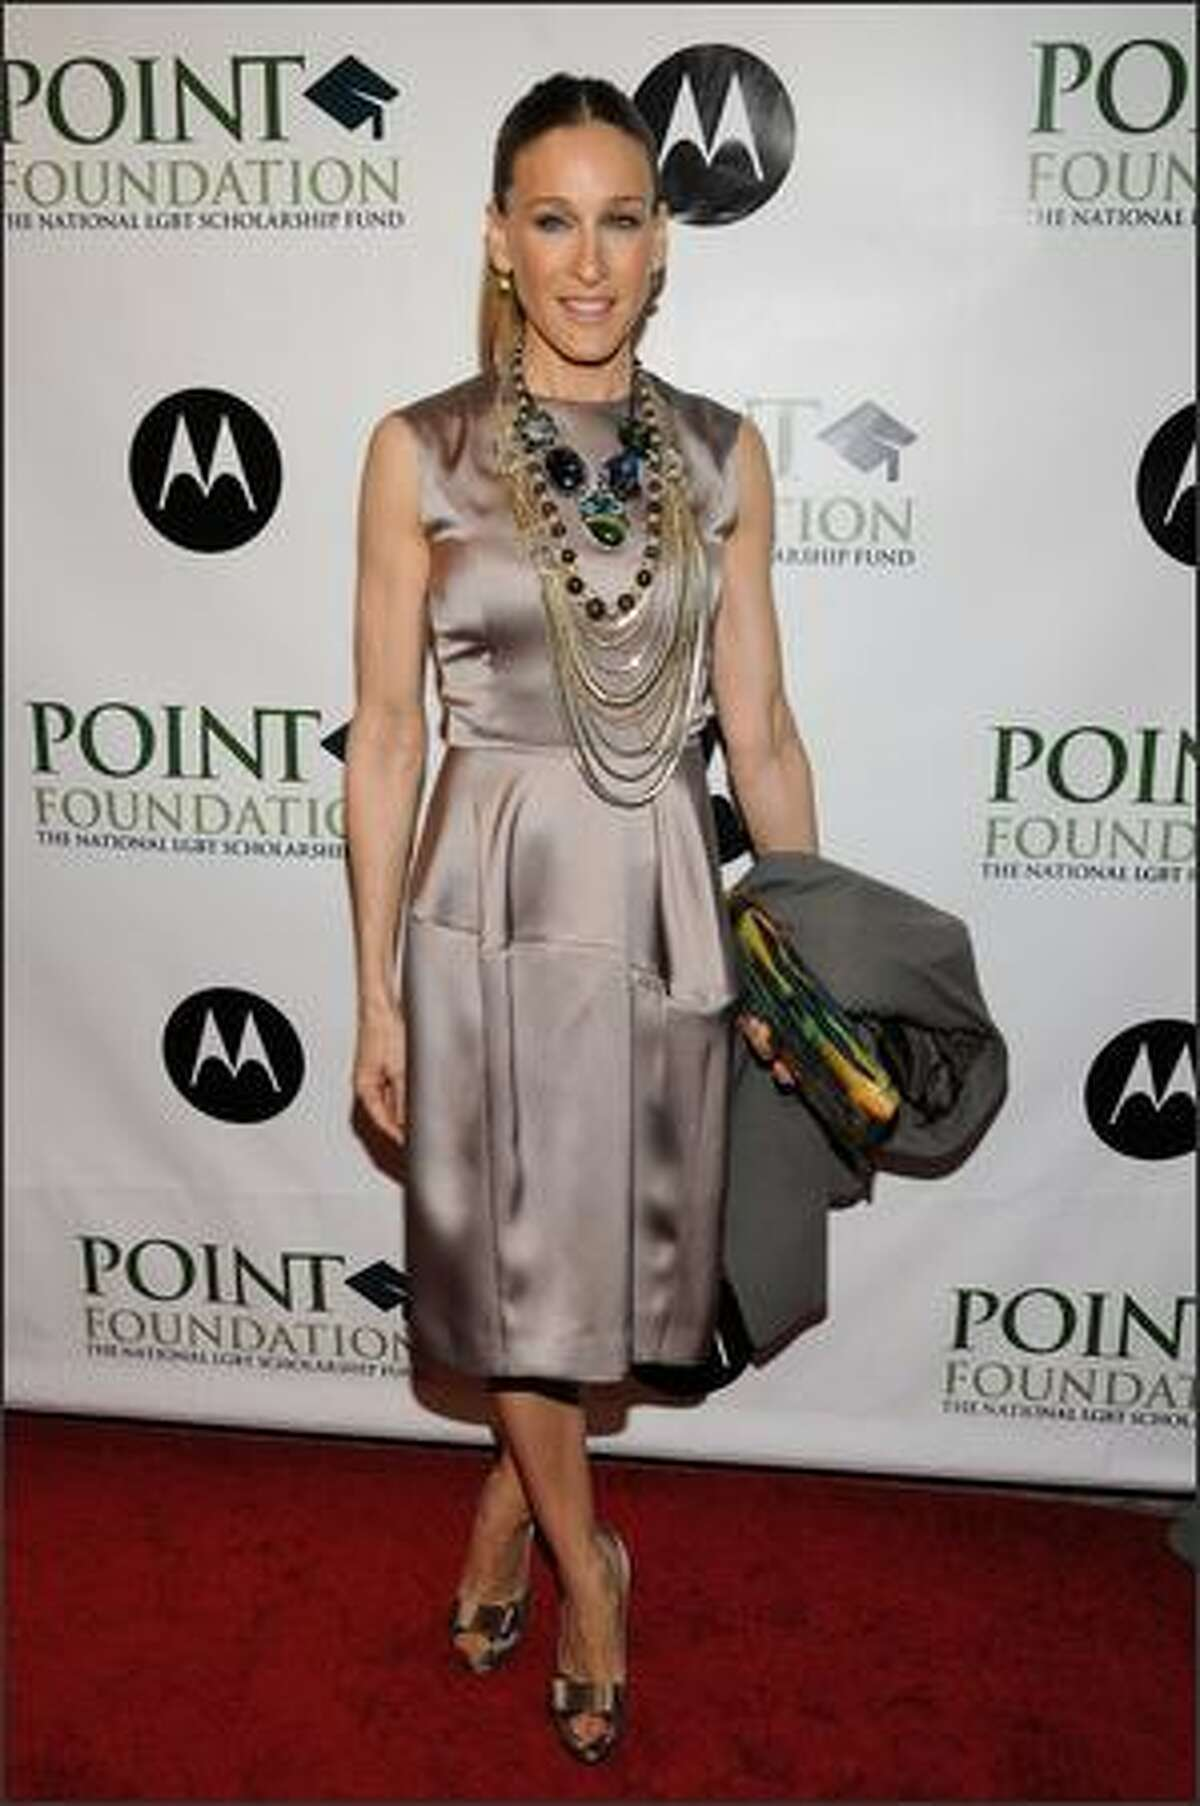 This is the second in an occasional series featuring stars and their ever-changing fashion styles. Sarah Jessica Parker arrives at the Point Foundation hosts Point Honors ... The Arts at Capitale in New York on April 7, 2008.